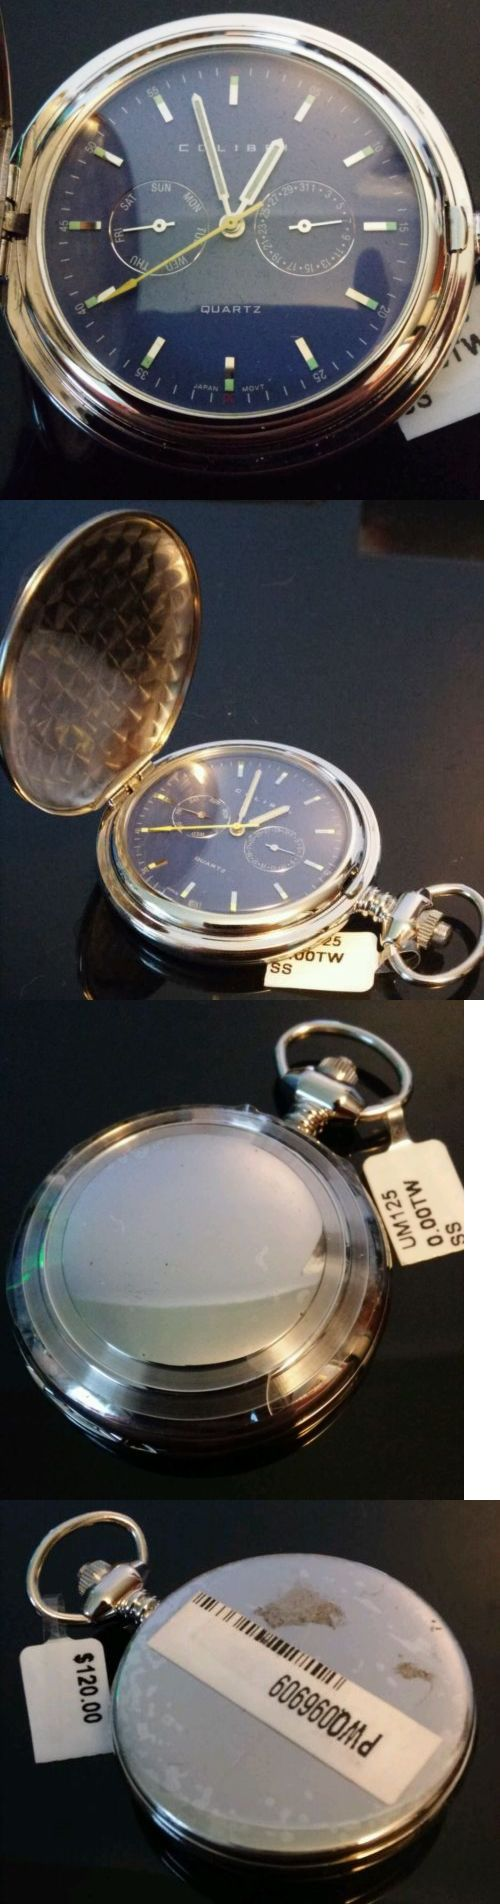 Modern 3938: New Colibri Pocket Watch With Day Date Subdials -> BUY IT NOW ONLY: $60 on eBay!